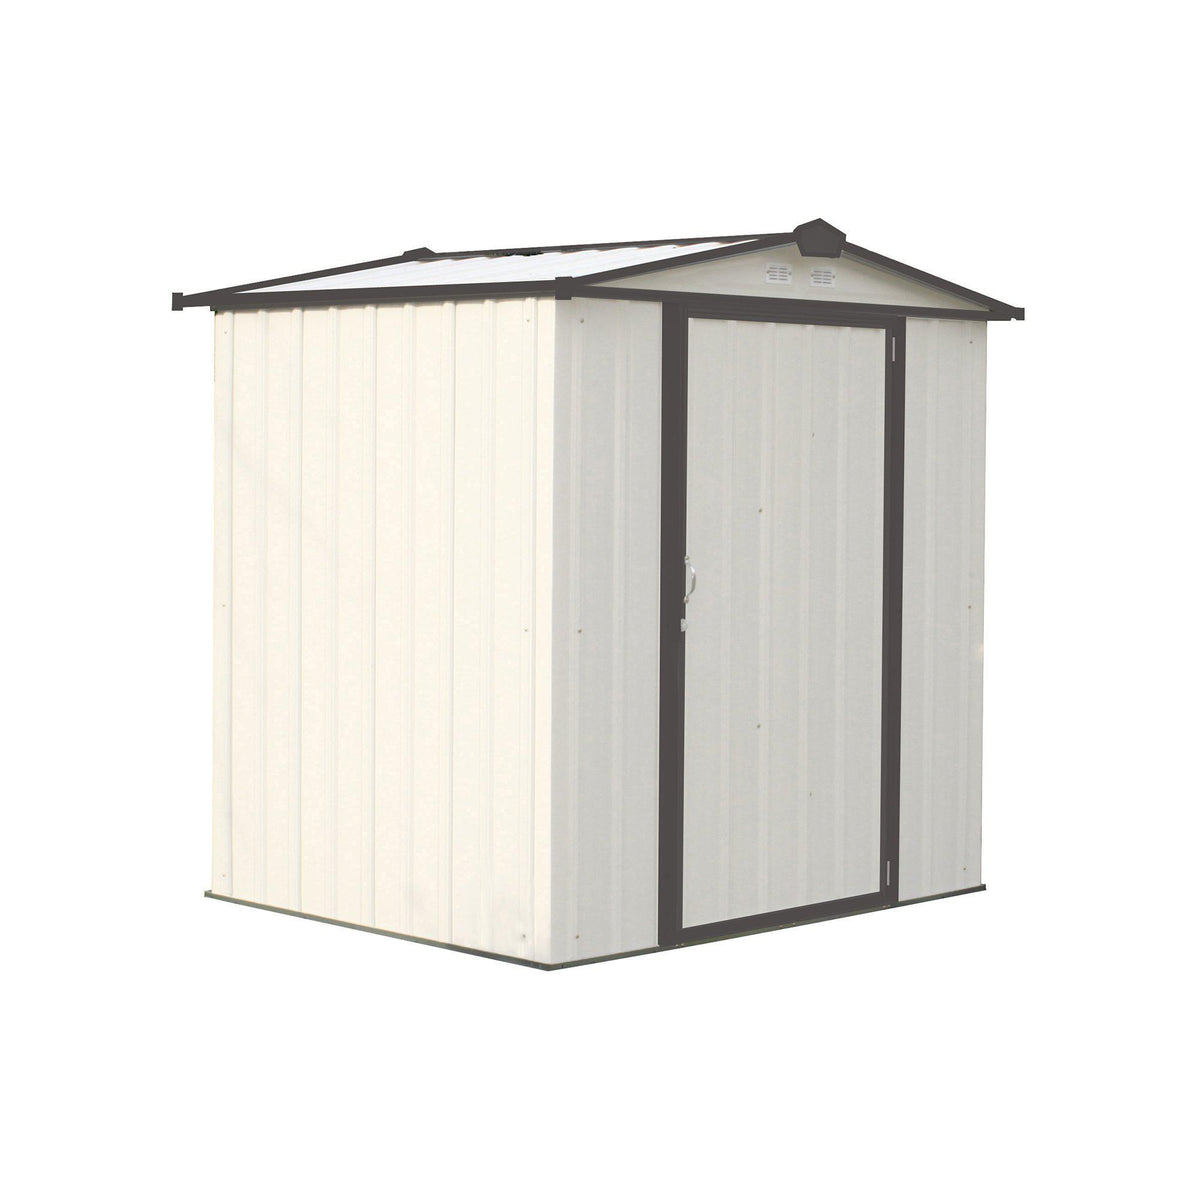 Arrow EZEE Shed Low Gable Steel Storage Shed, Cream/Charcoal Trim, 6 x 5 ft.